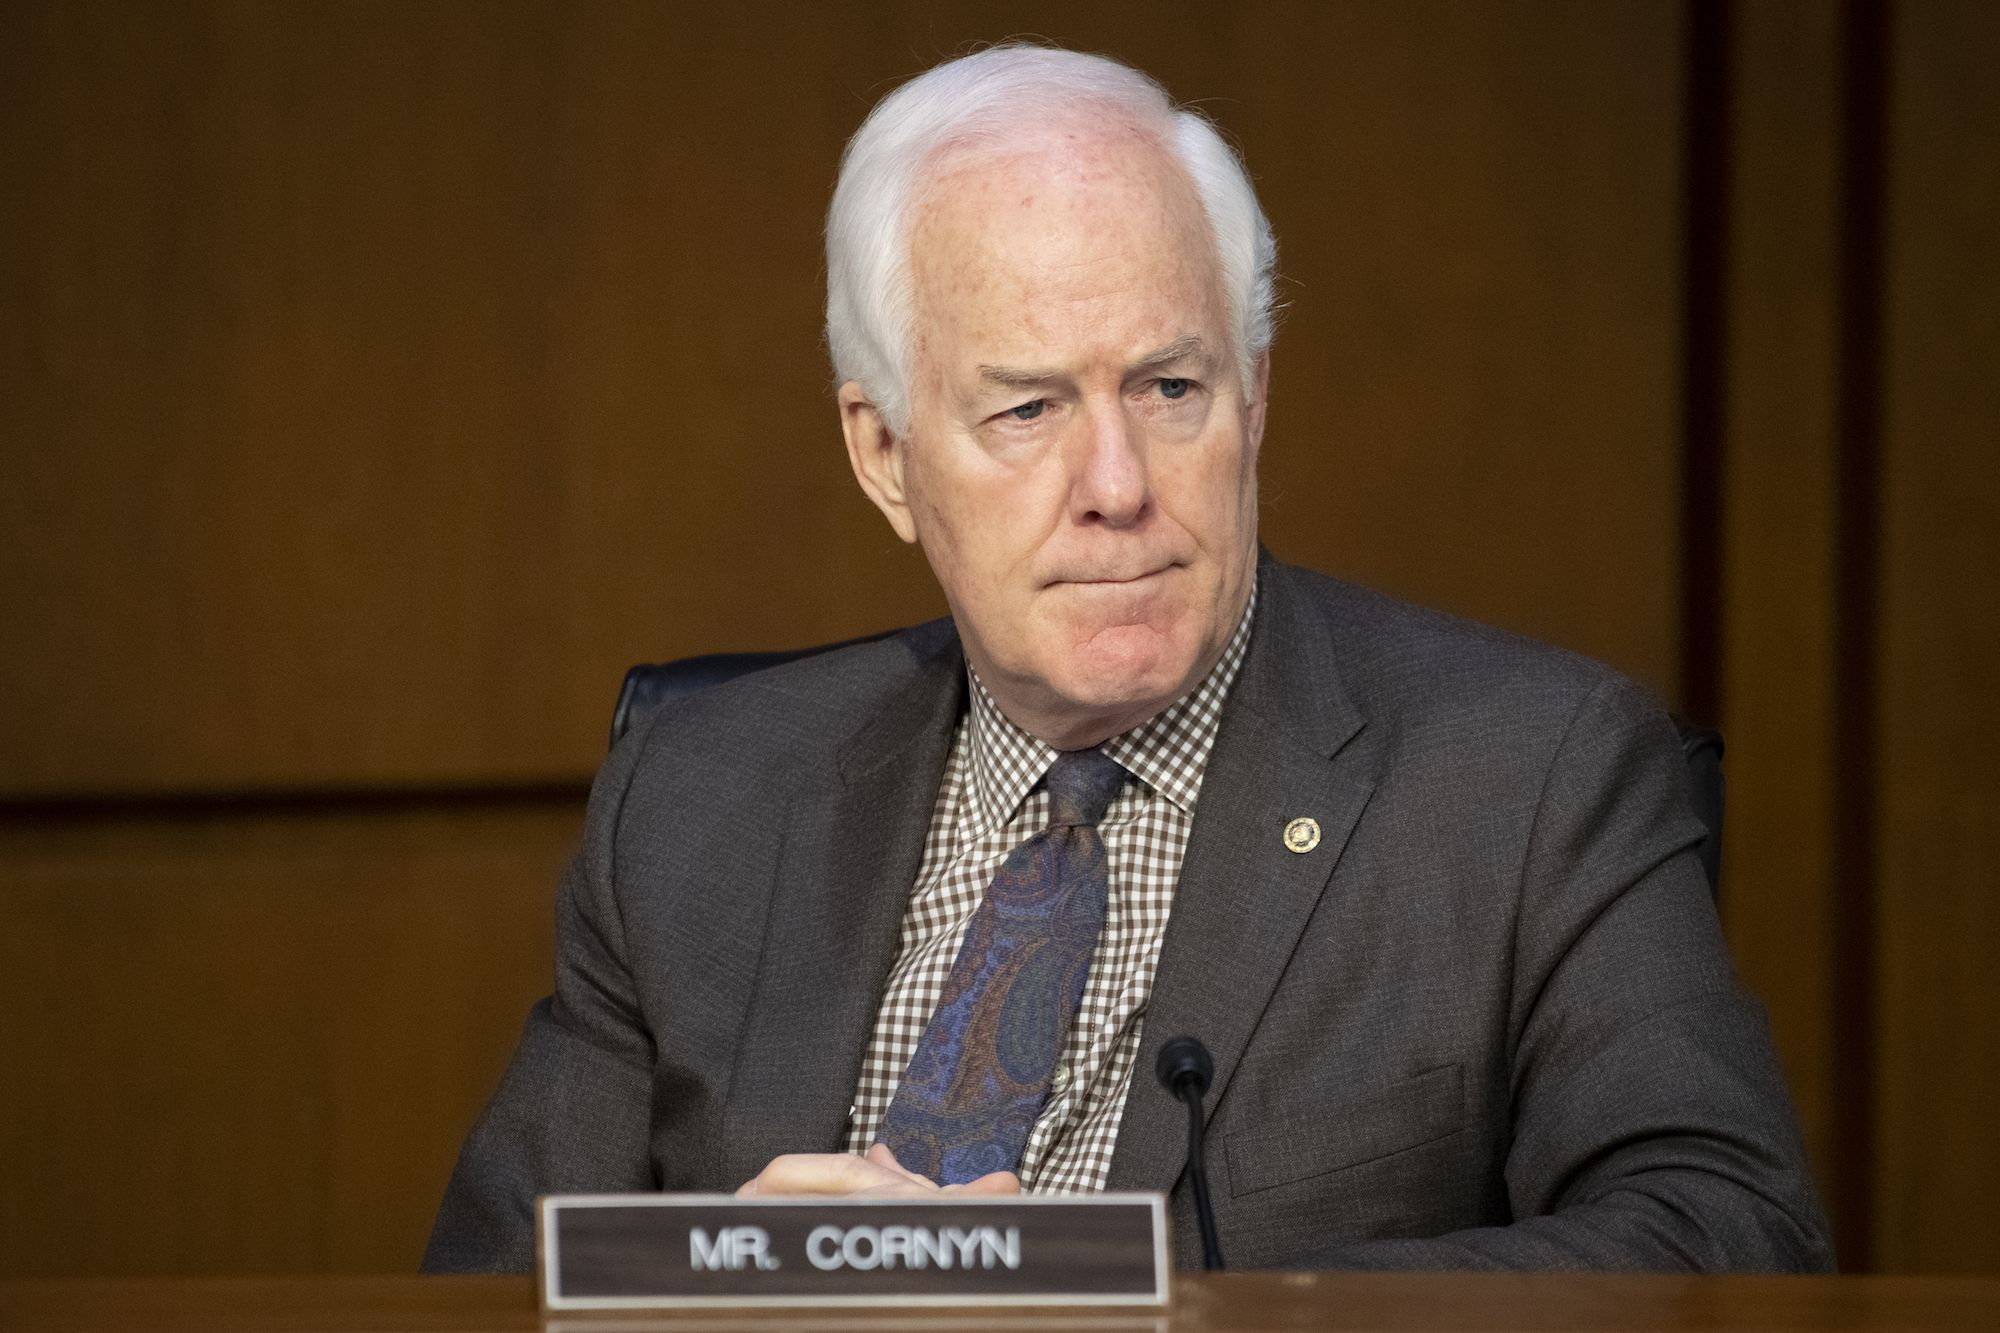 John Cornyn May Be Rehashing a Decades-Old Beef While Blocking a Biden Nominee